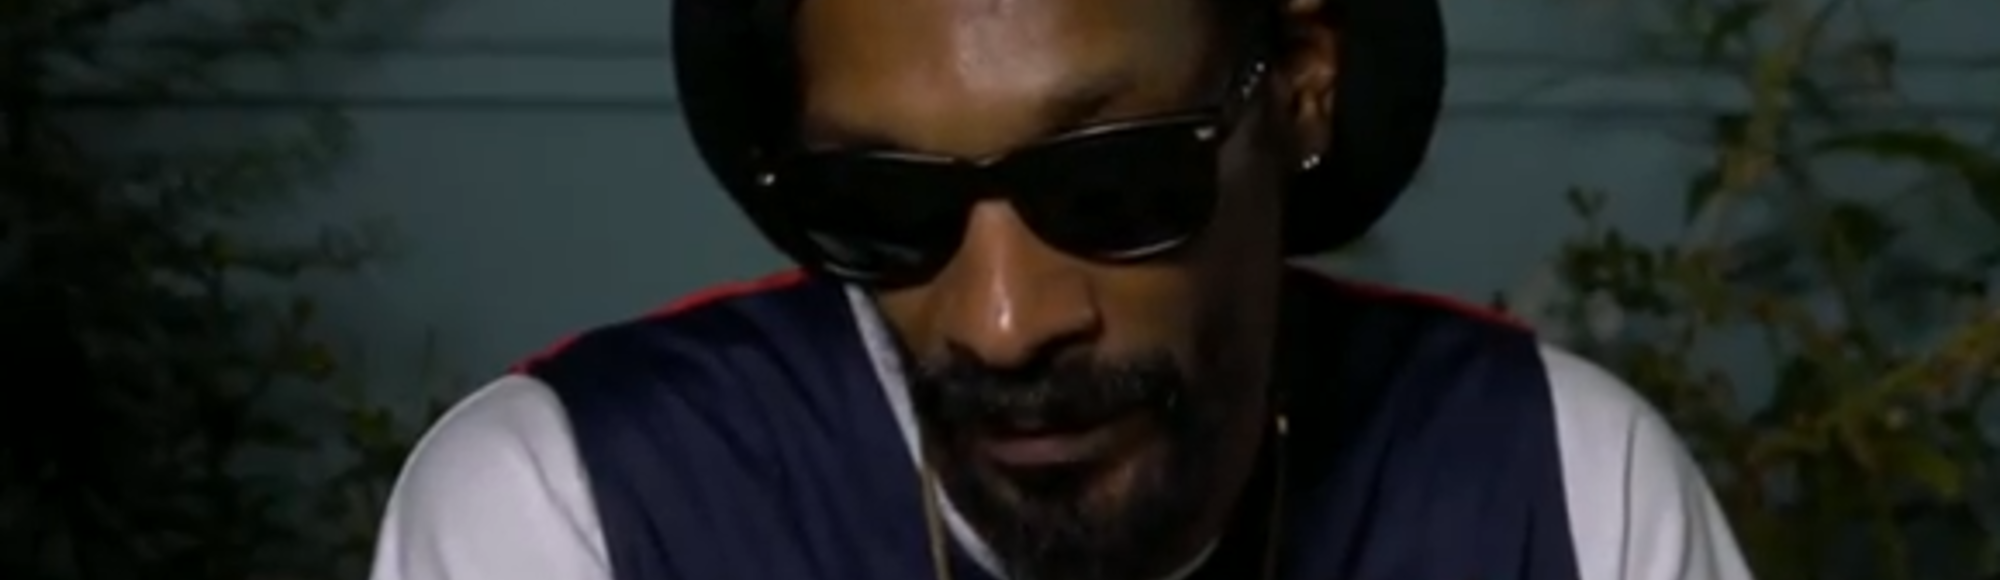 We Got High with Snoop Lion